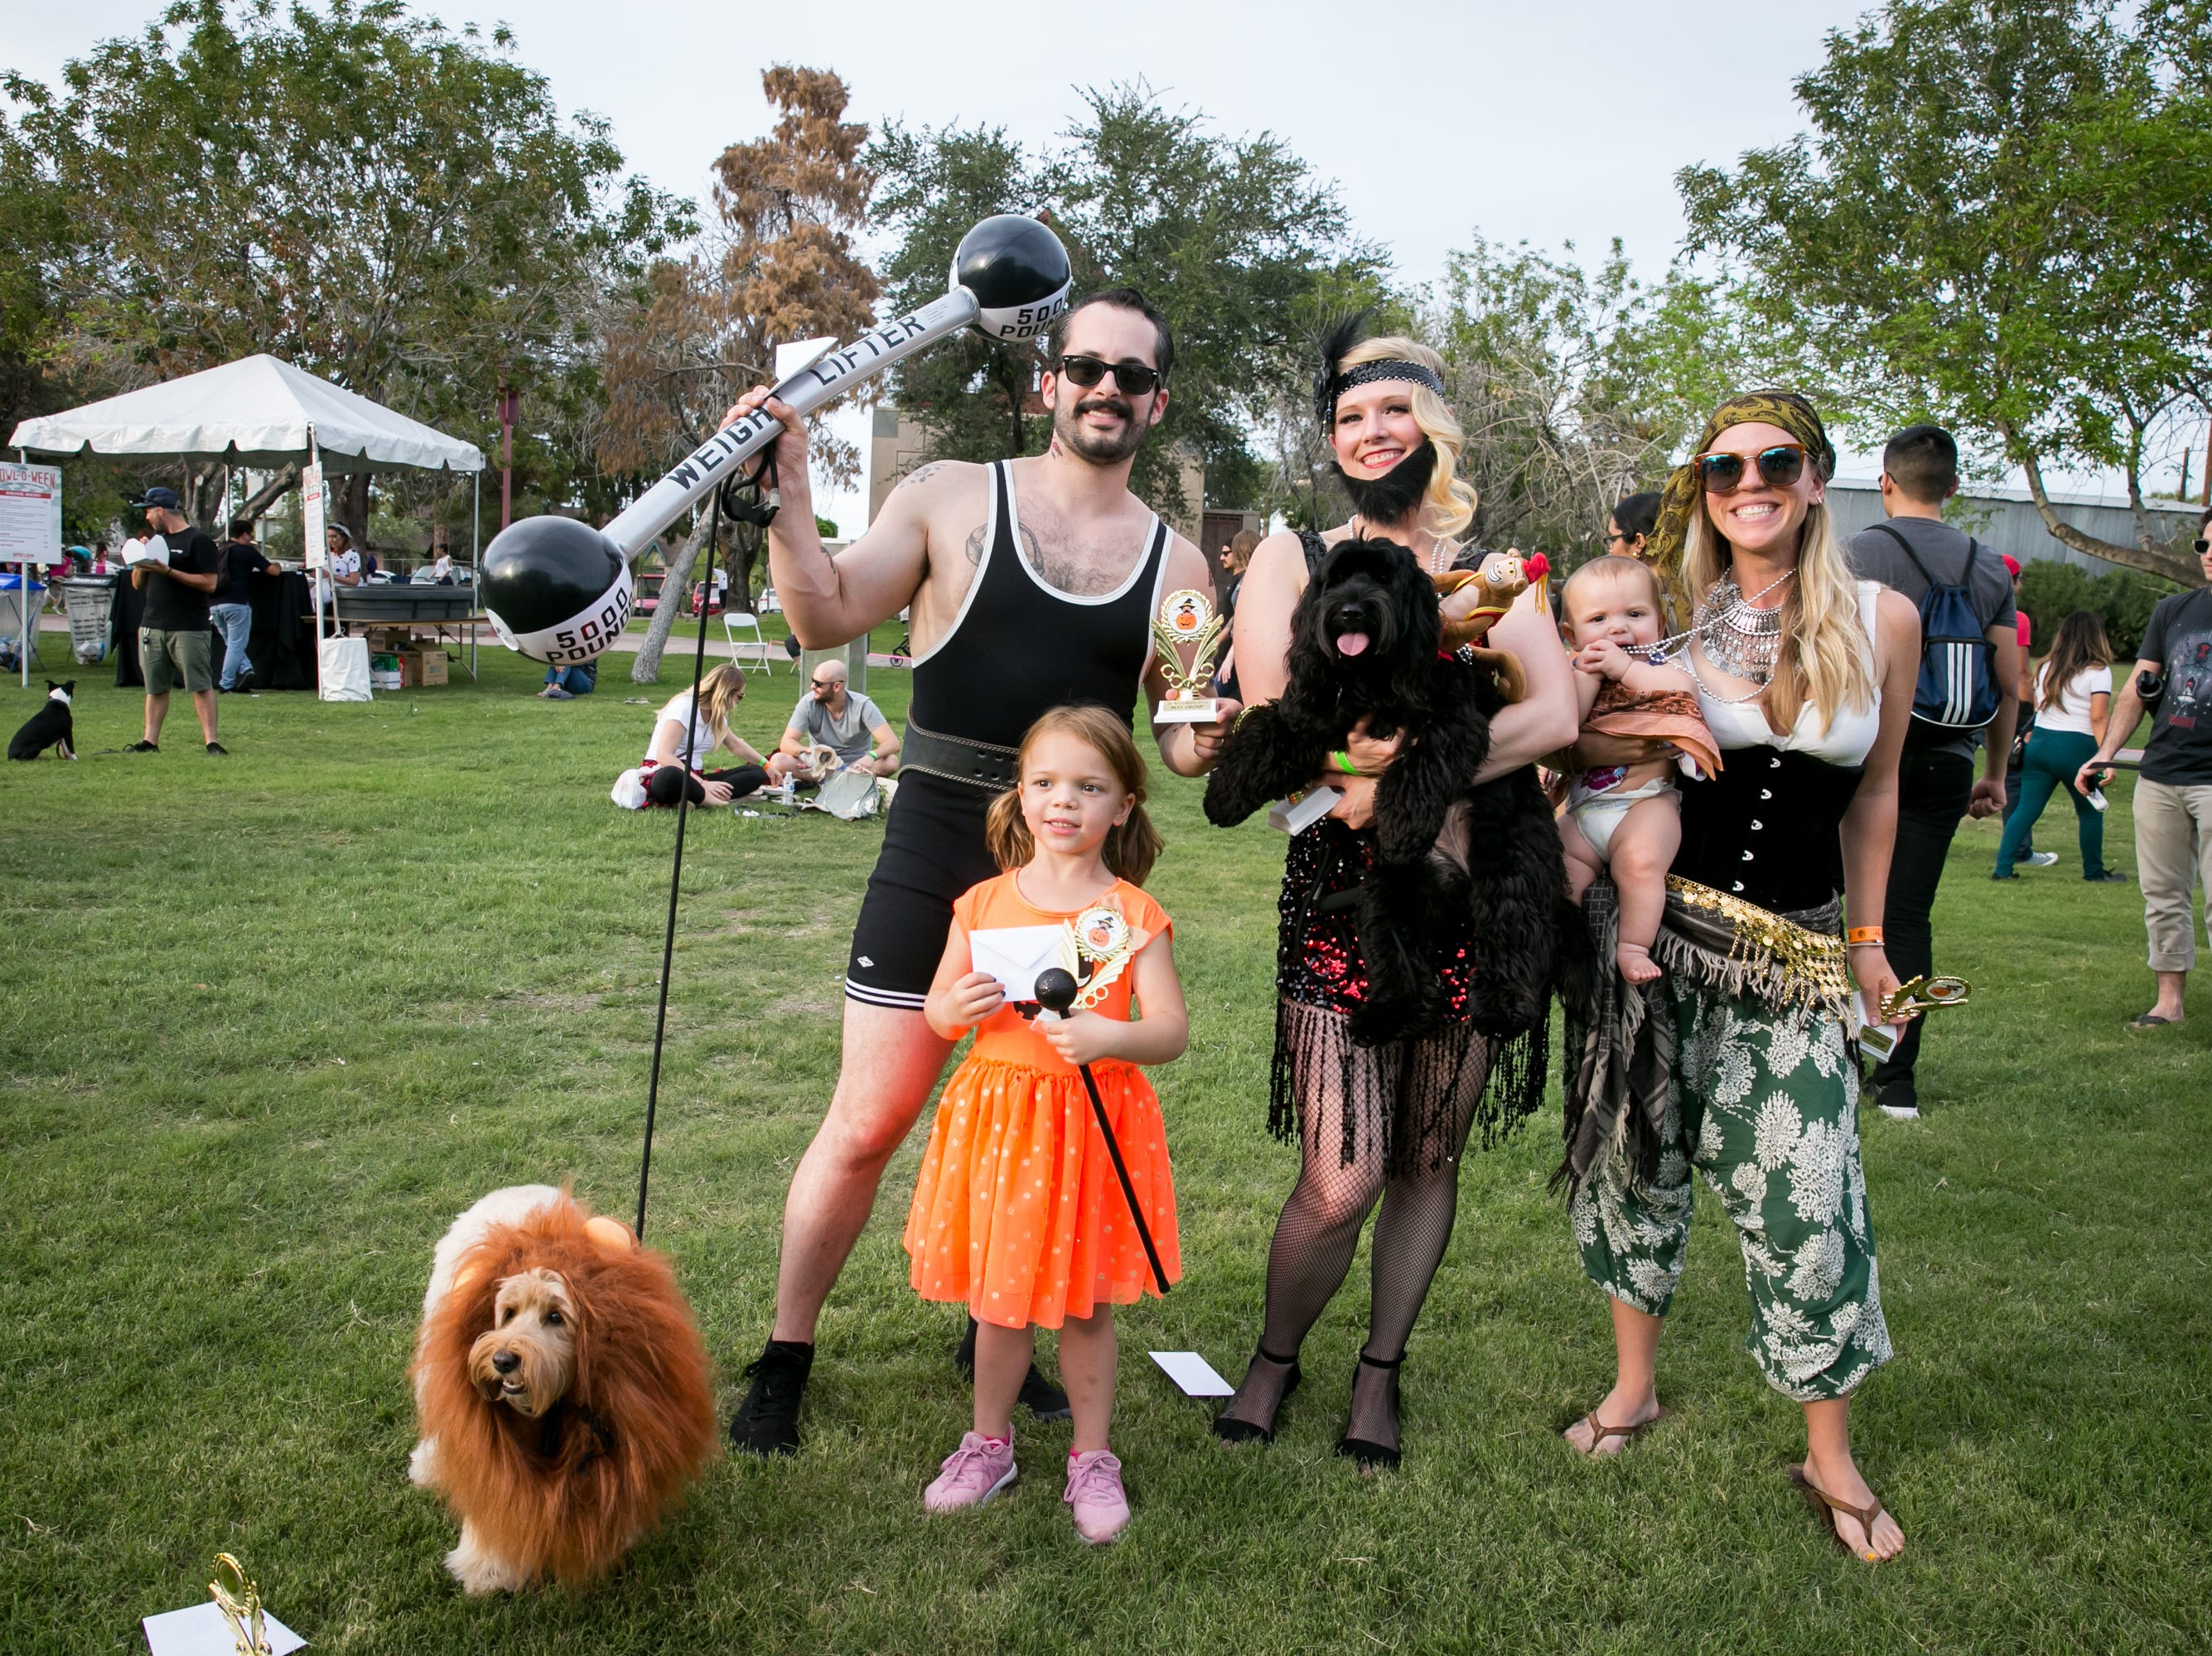 The circus family won a prize for best group costume during Howl-o-Ween at Hance Park on Sunday, October 28, 2018.